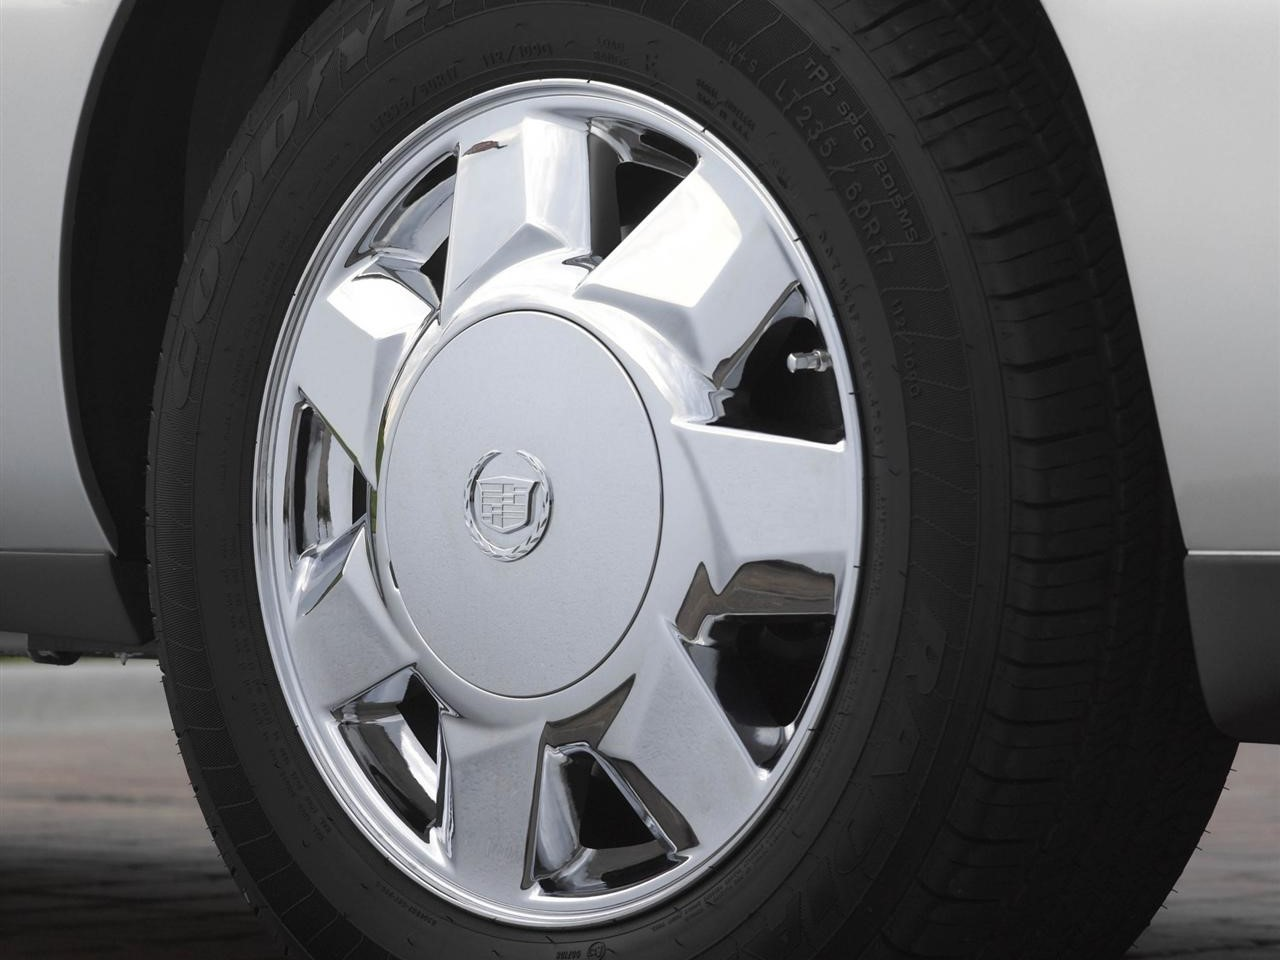 7-spoke aluminum wheels